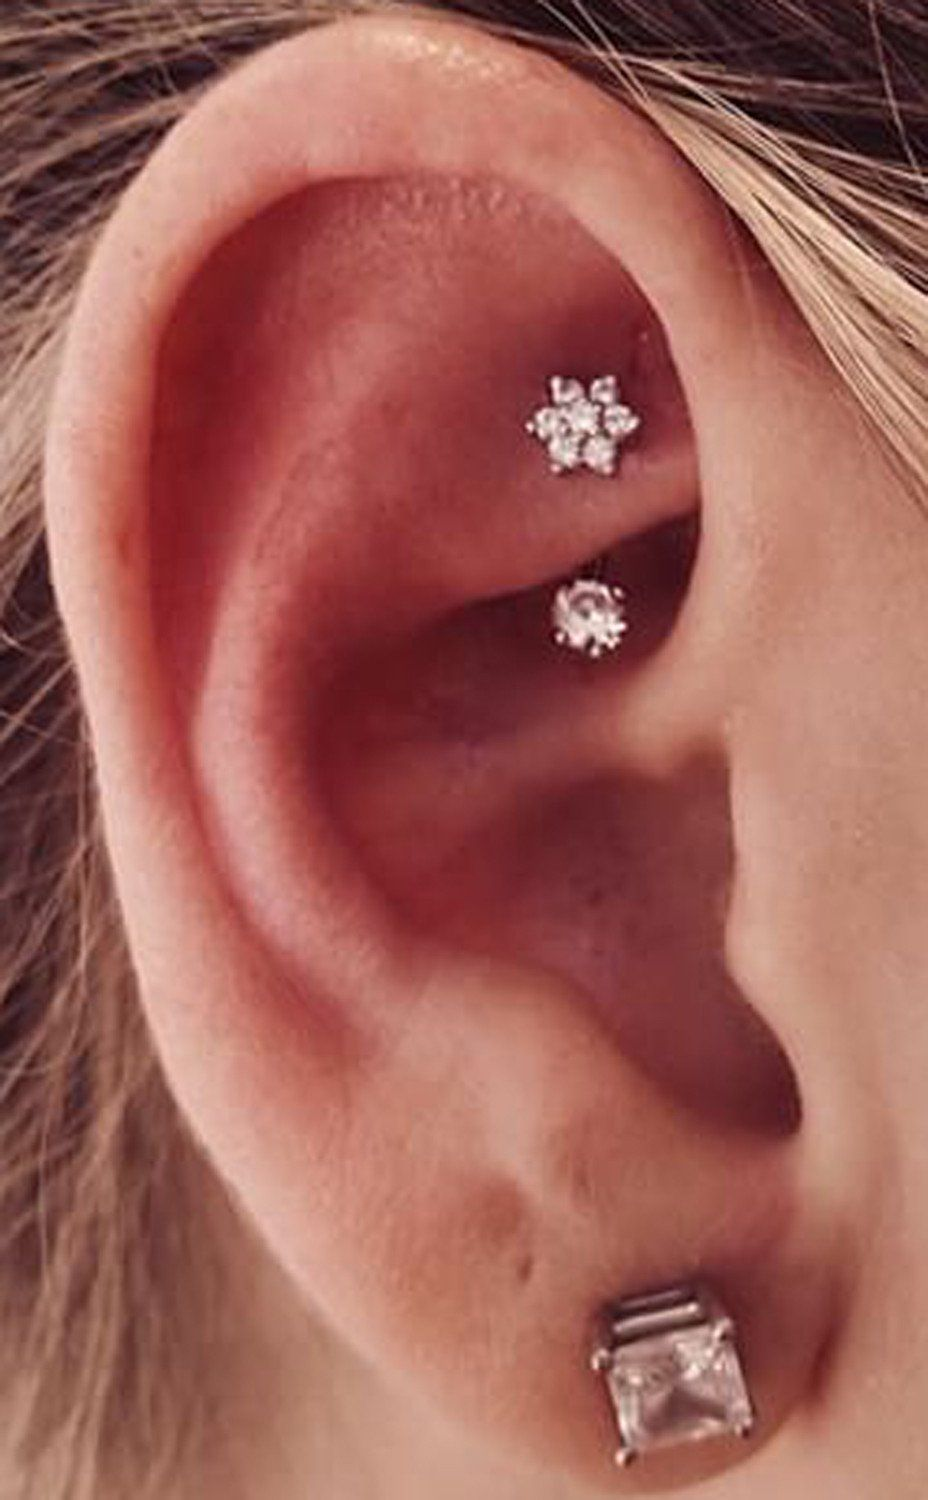 Crystal flower rook piercing jewelry earring simple minimal ear ideas at mybodiart also steal these in rh pinterest